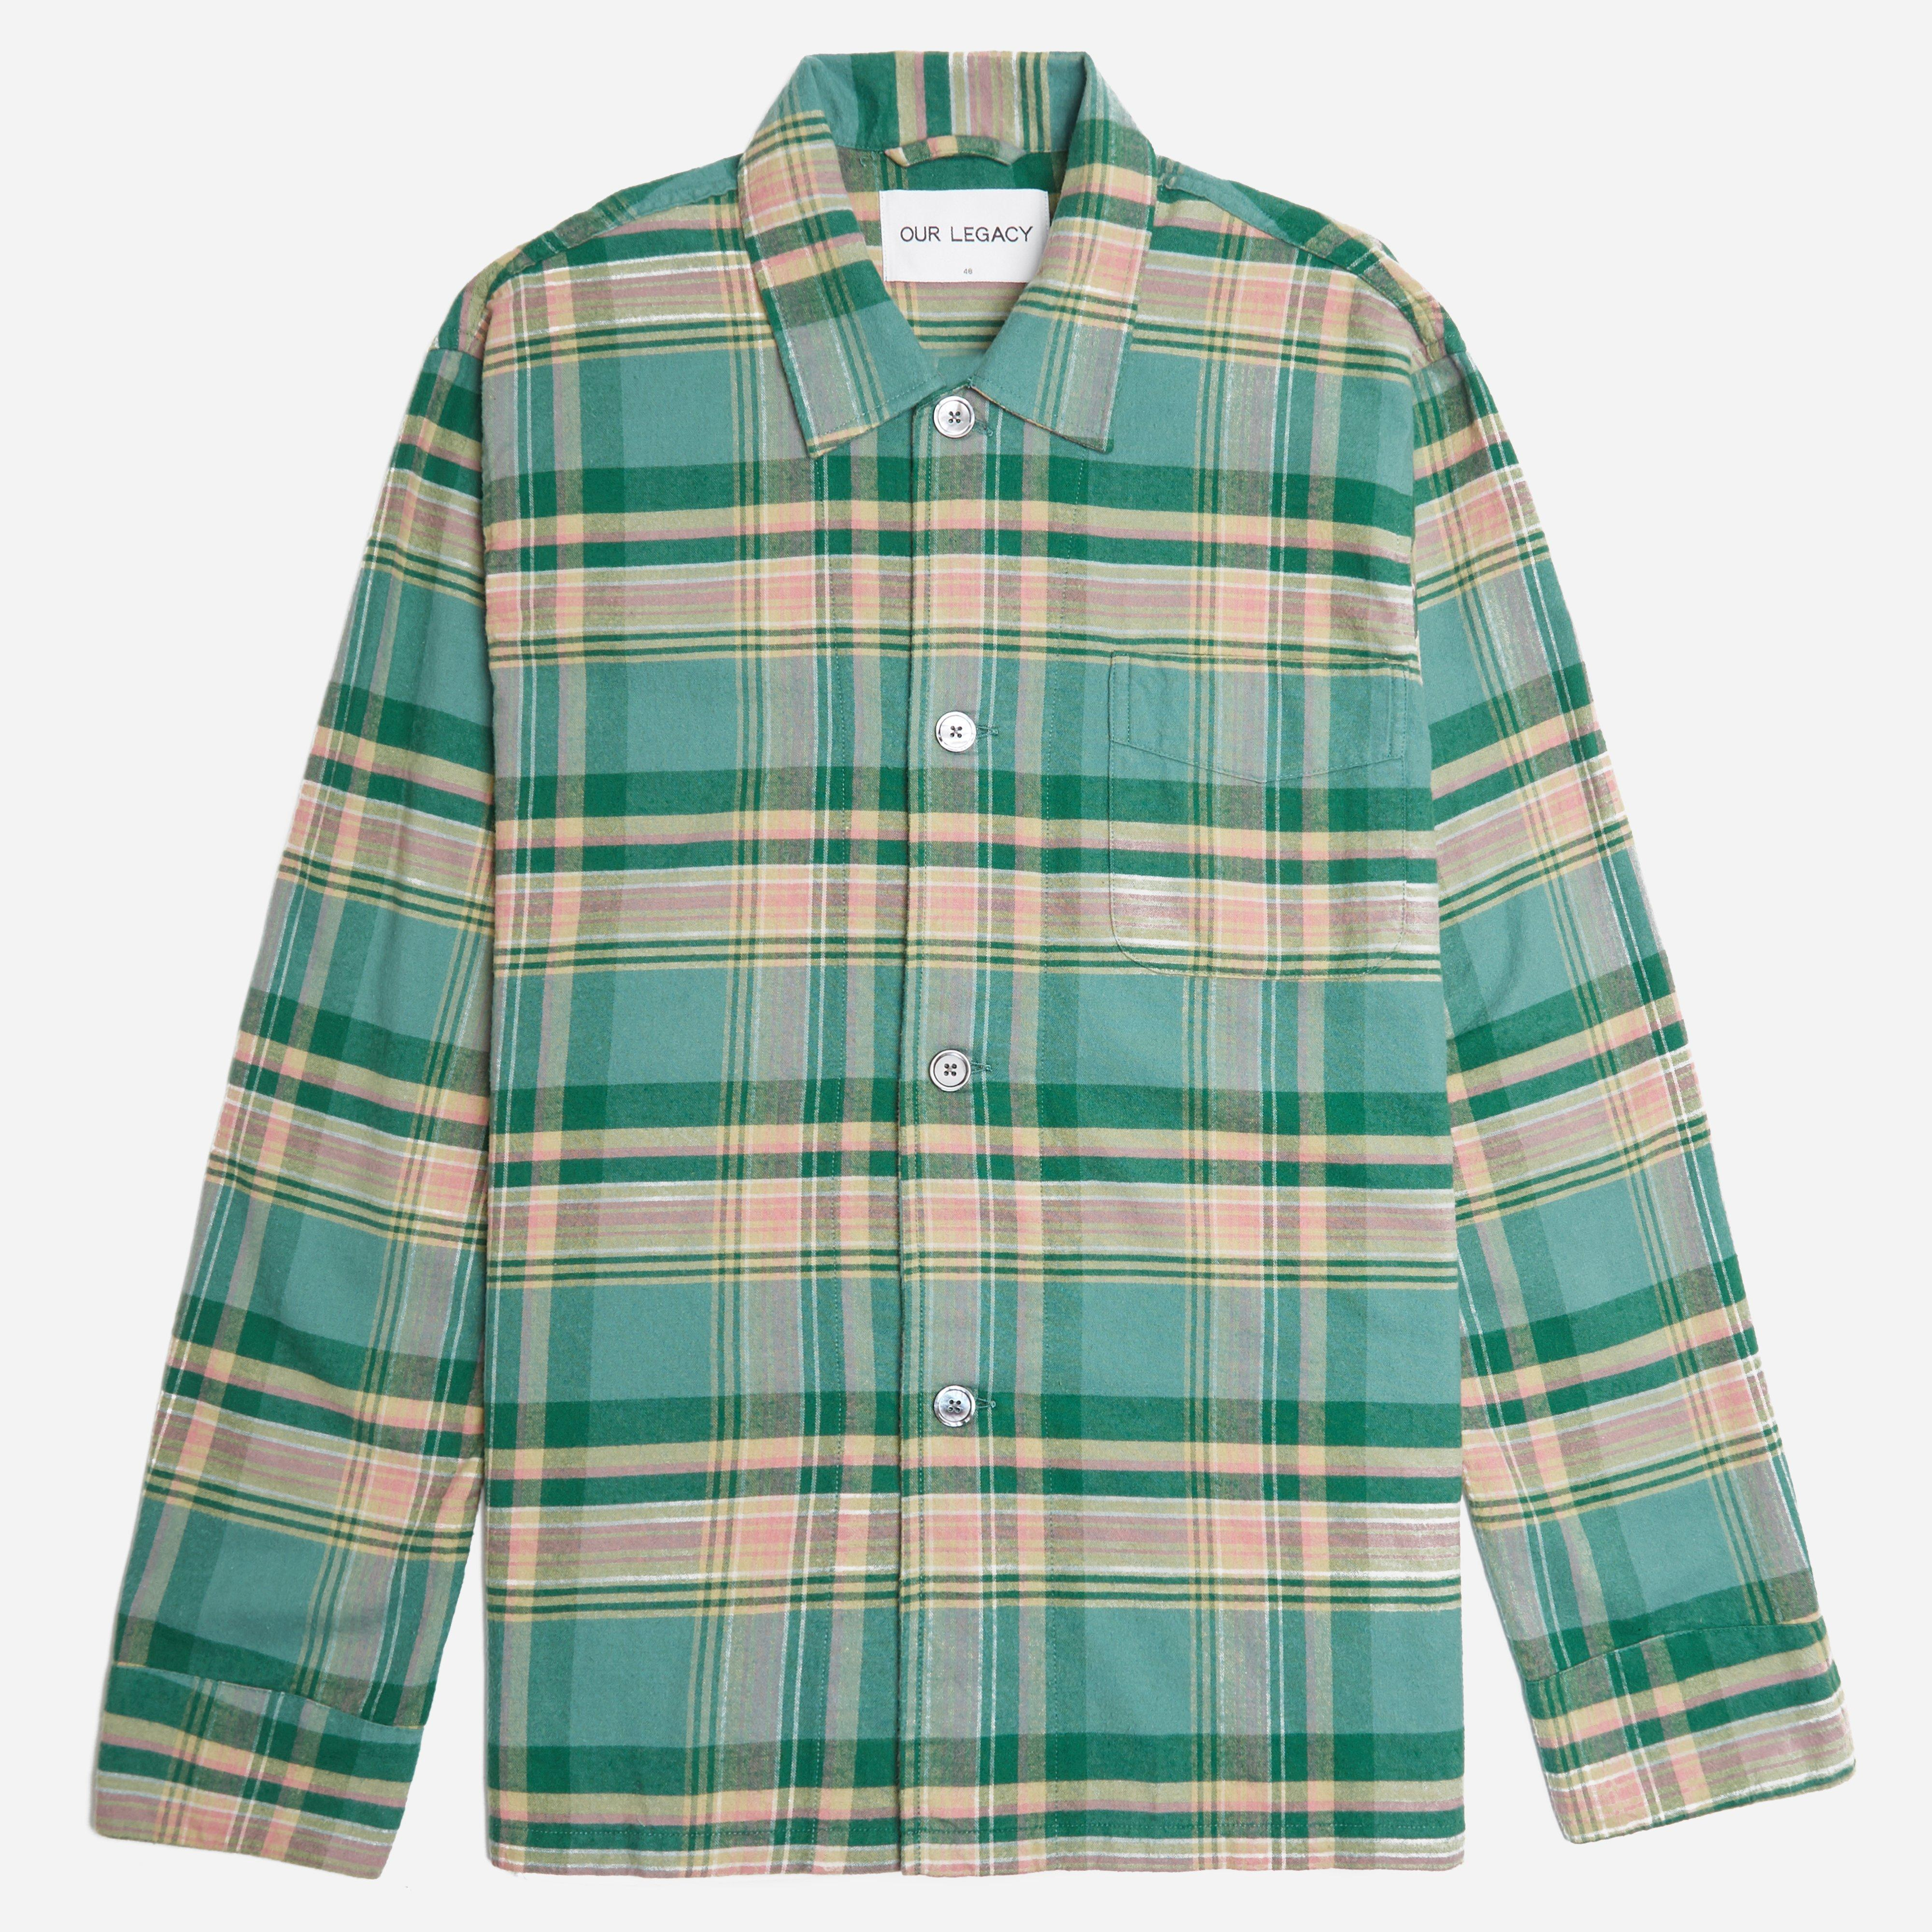 Our Legacy Check Flannel Box Shirt